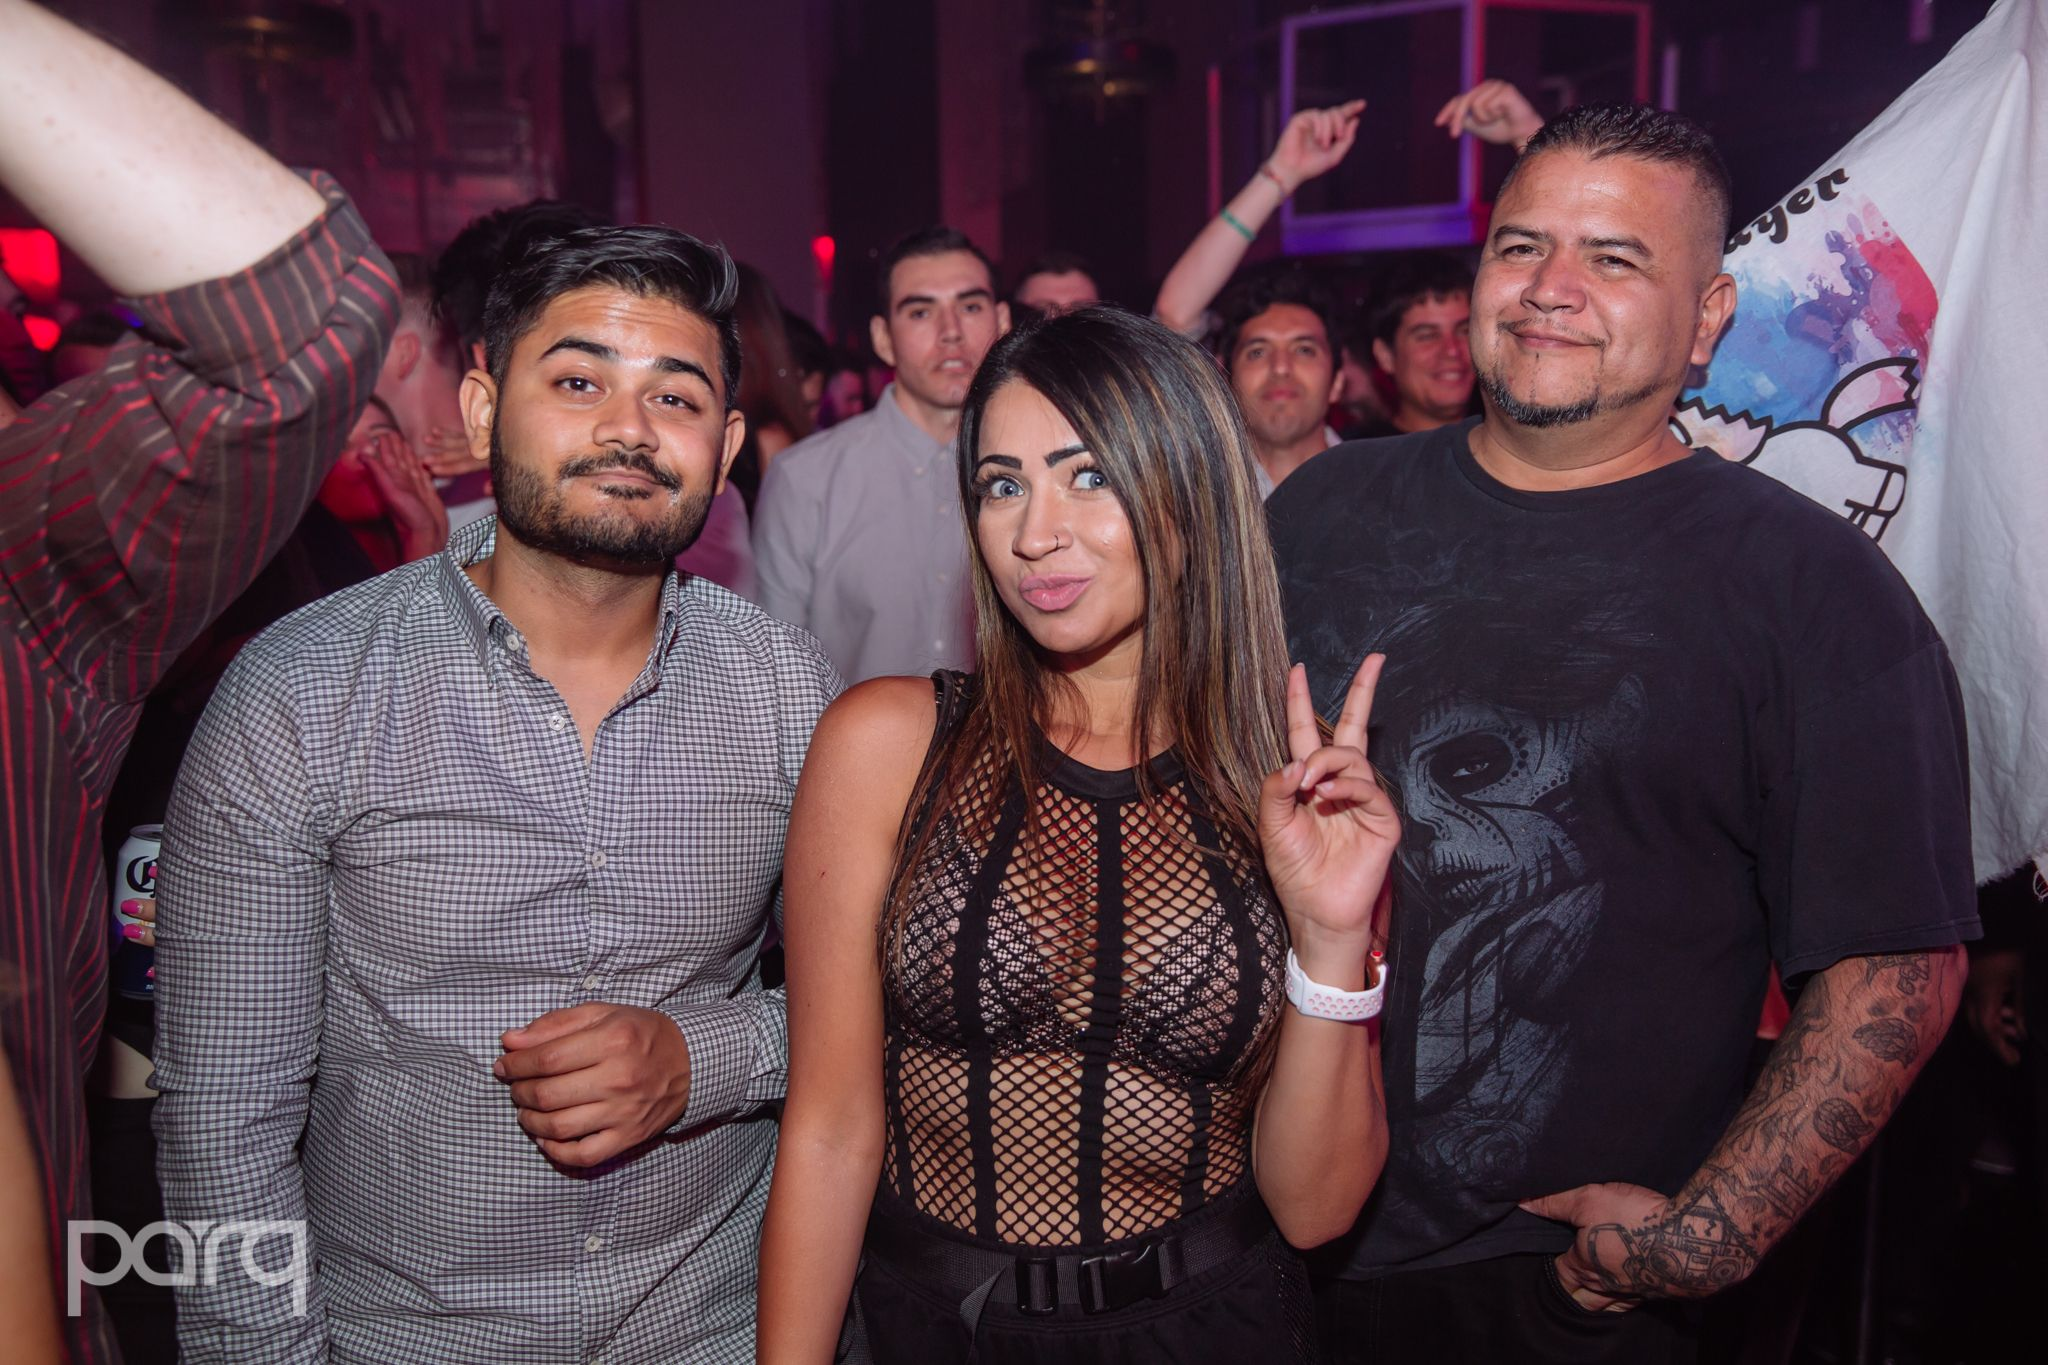 09.01.18 Parq - Bash On Broadway-18.jpg